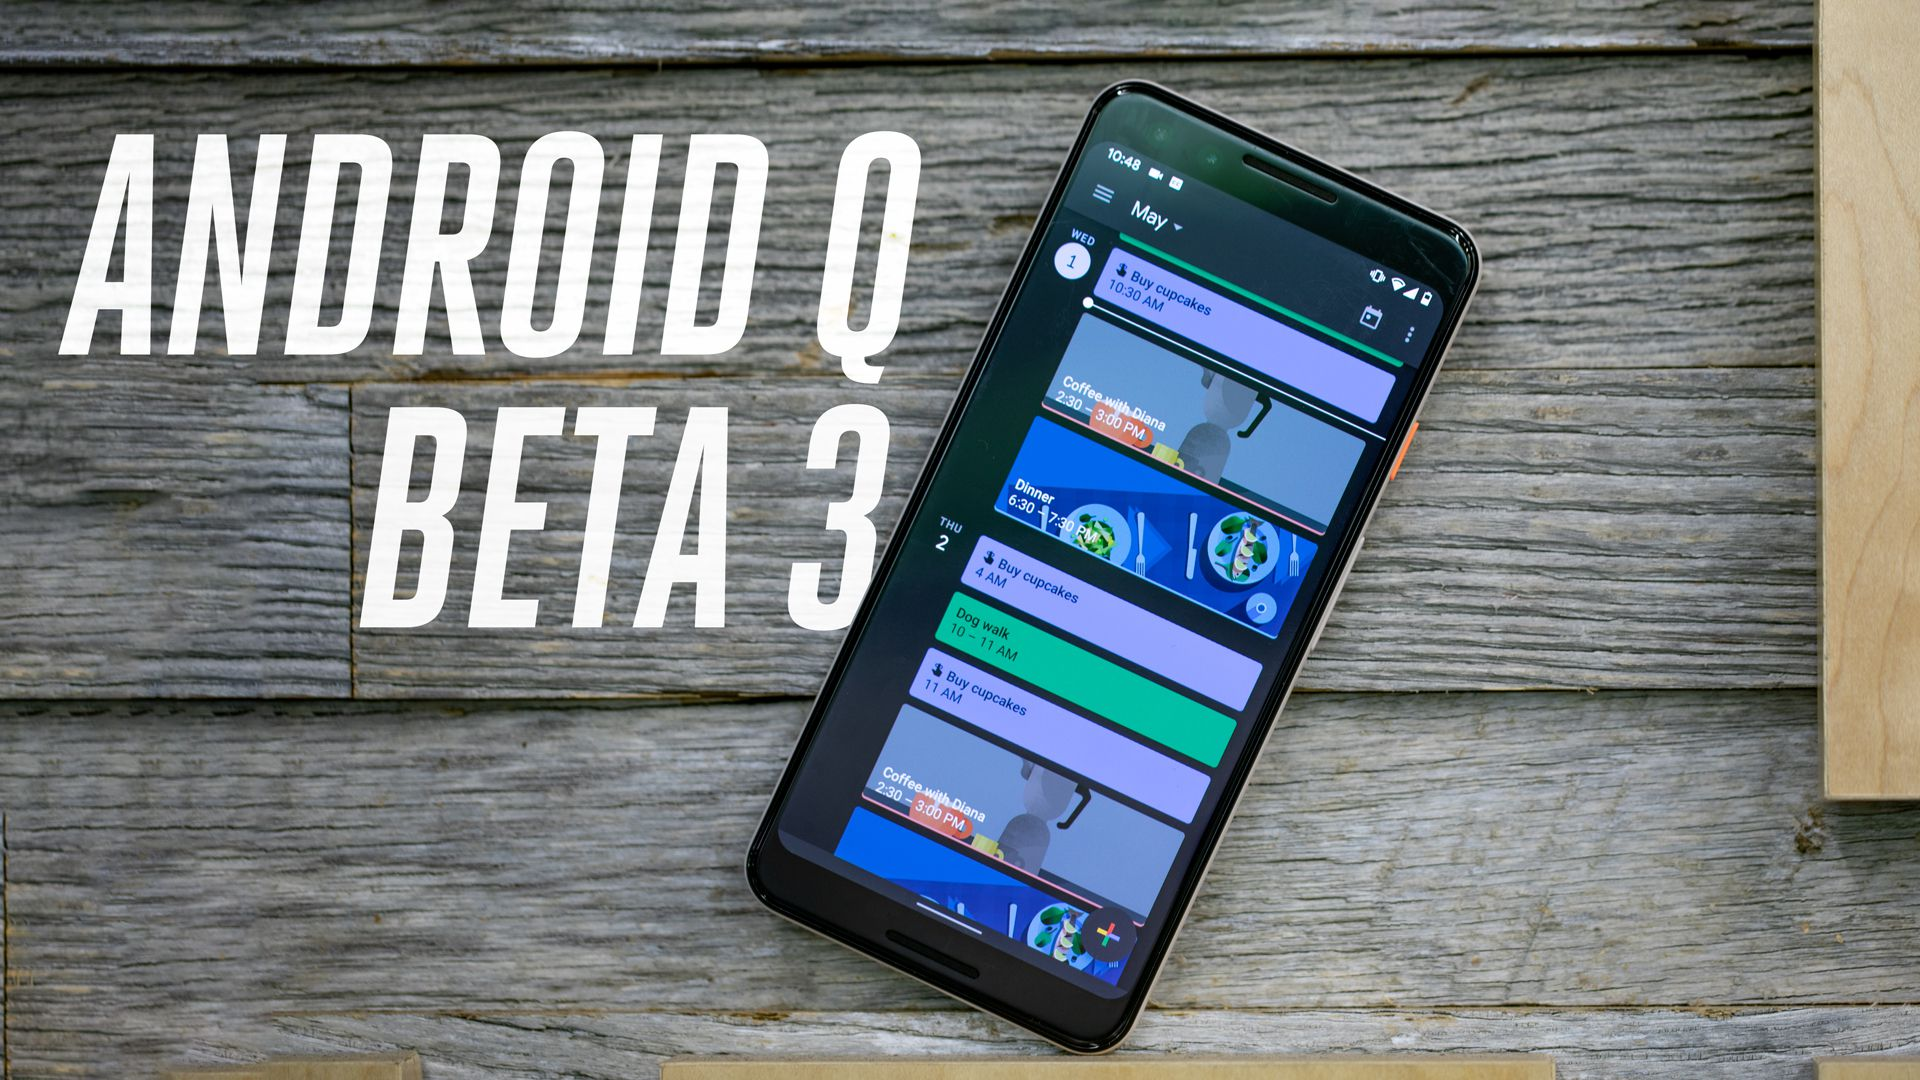 """The Name """"Android Q"""" being Ditched in Favor of Android 10"""